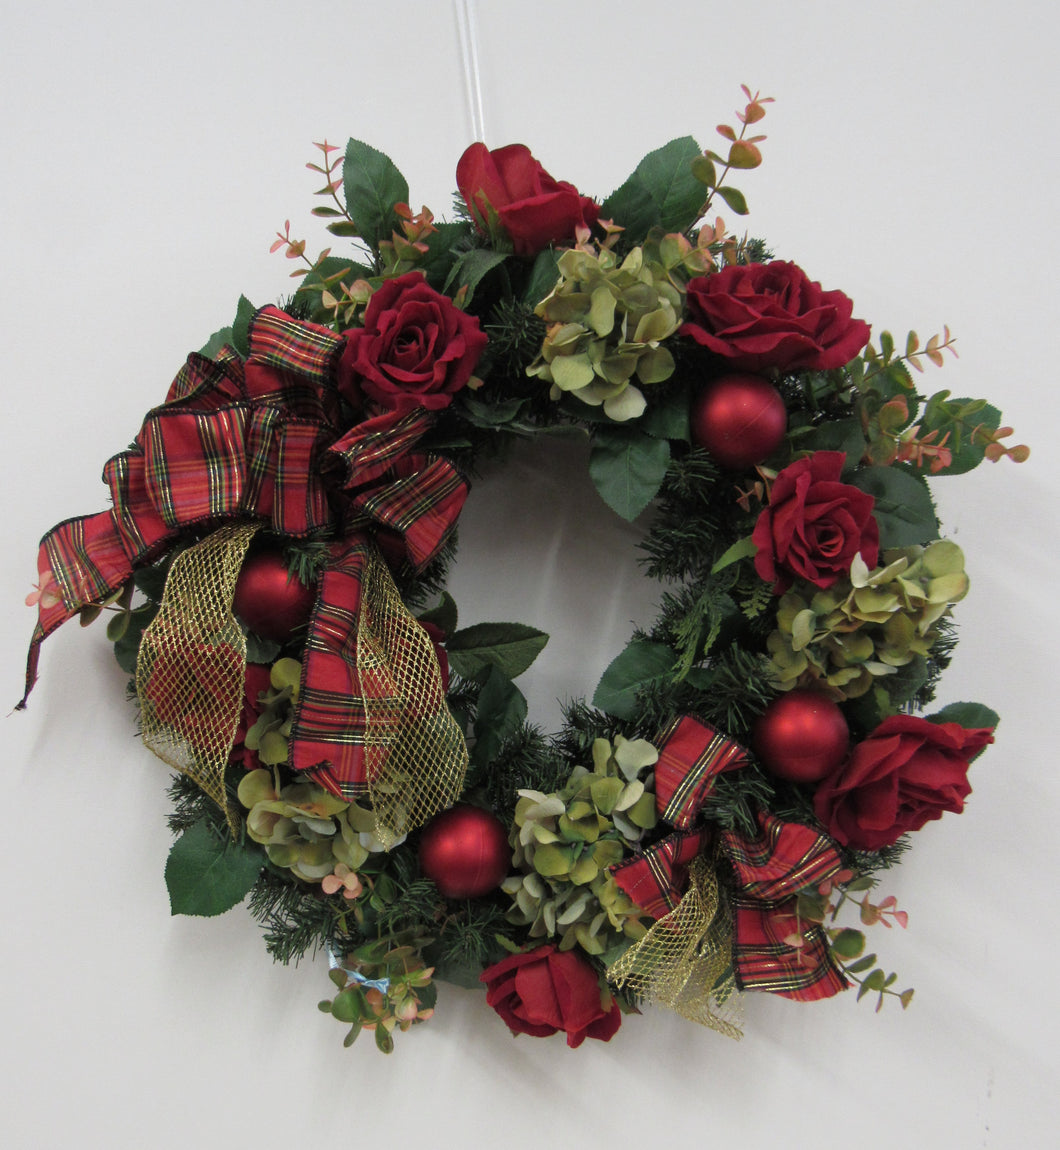 Gallery/Hol134 - April's Garden Wreath